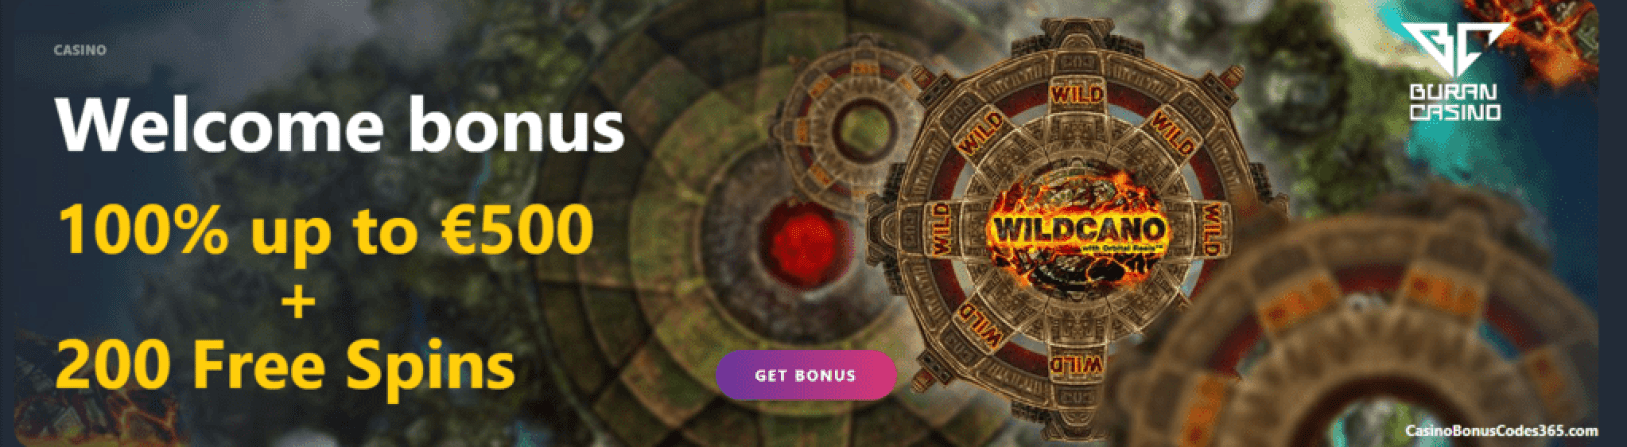 Buran Casino €500 Bonus Plus 200 FREE Spins